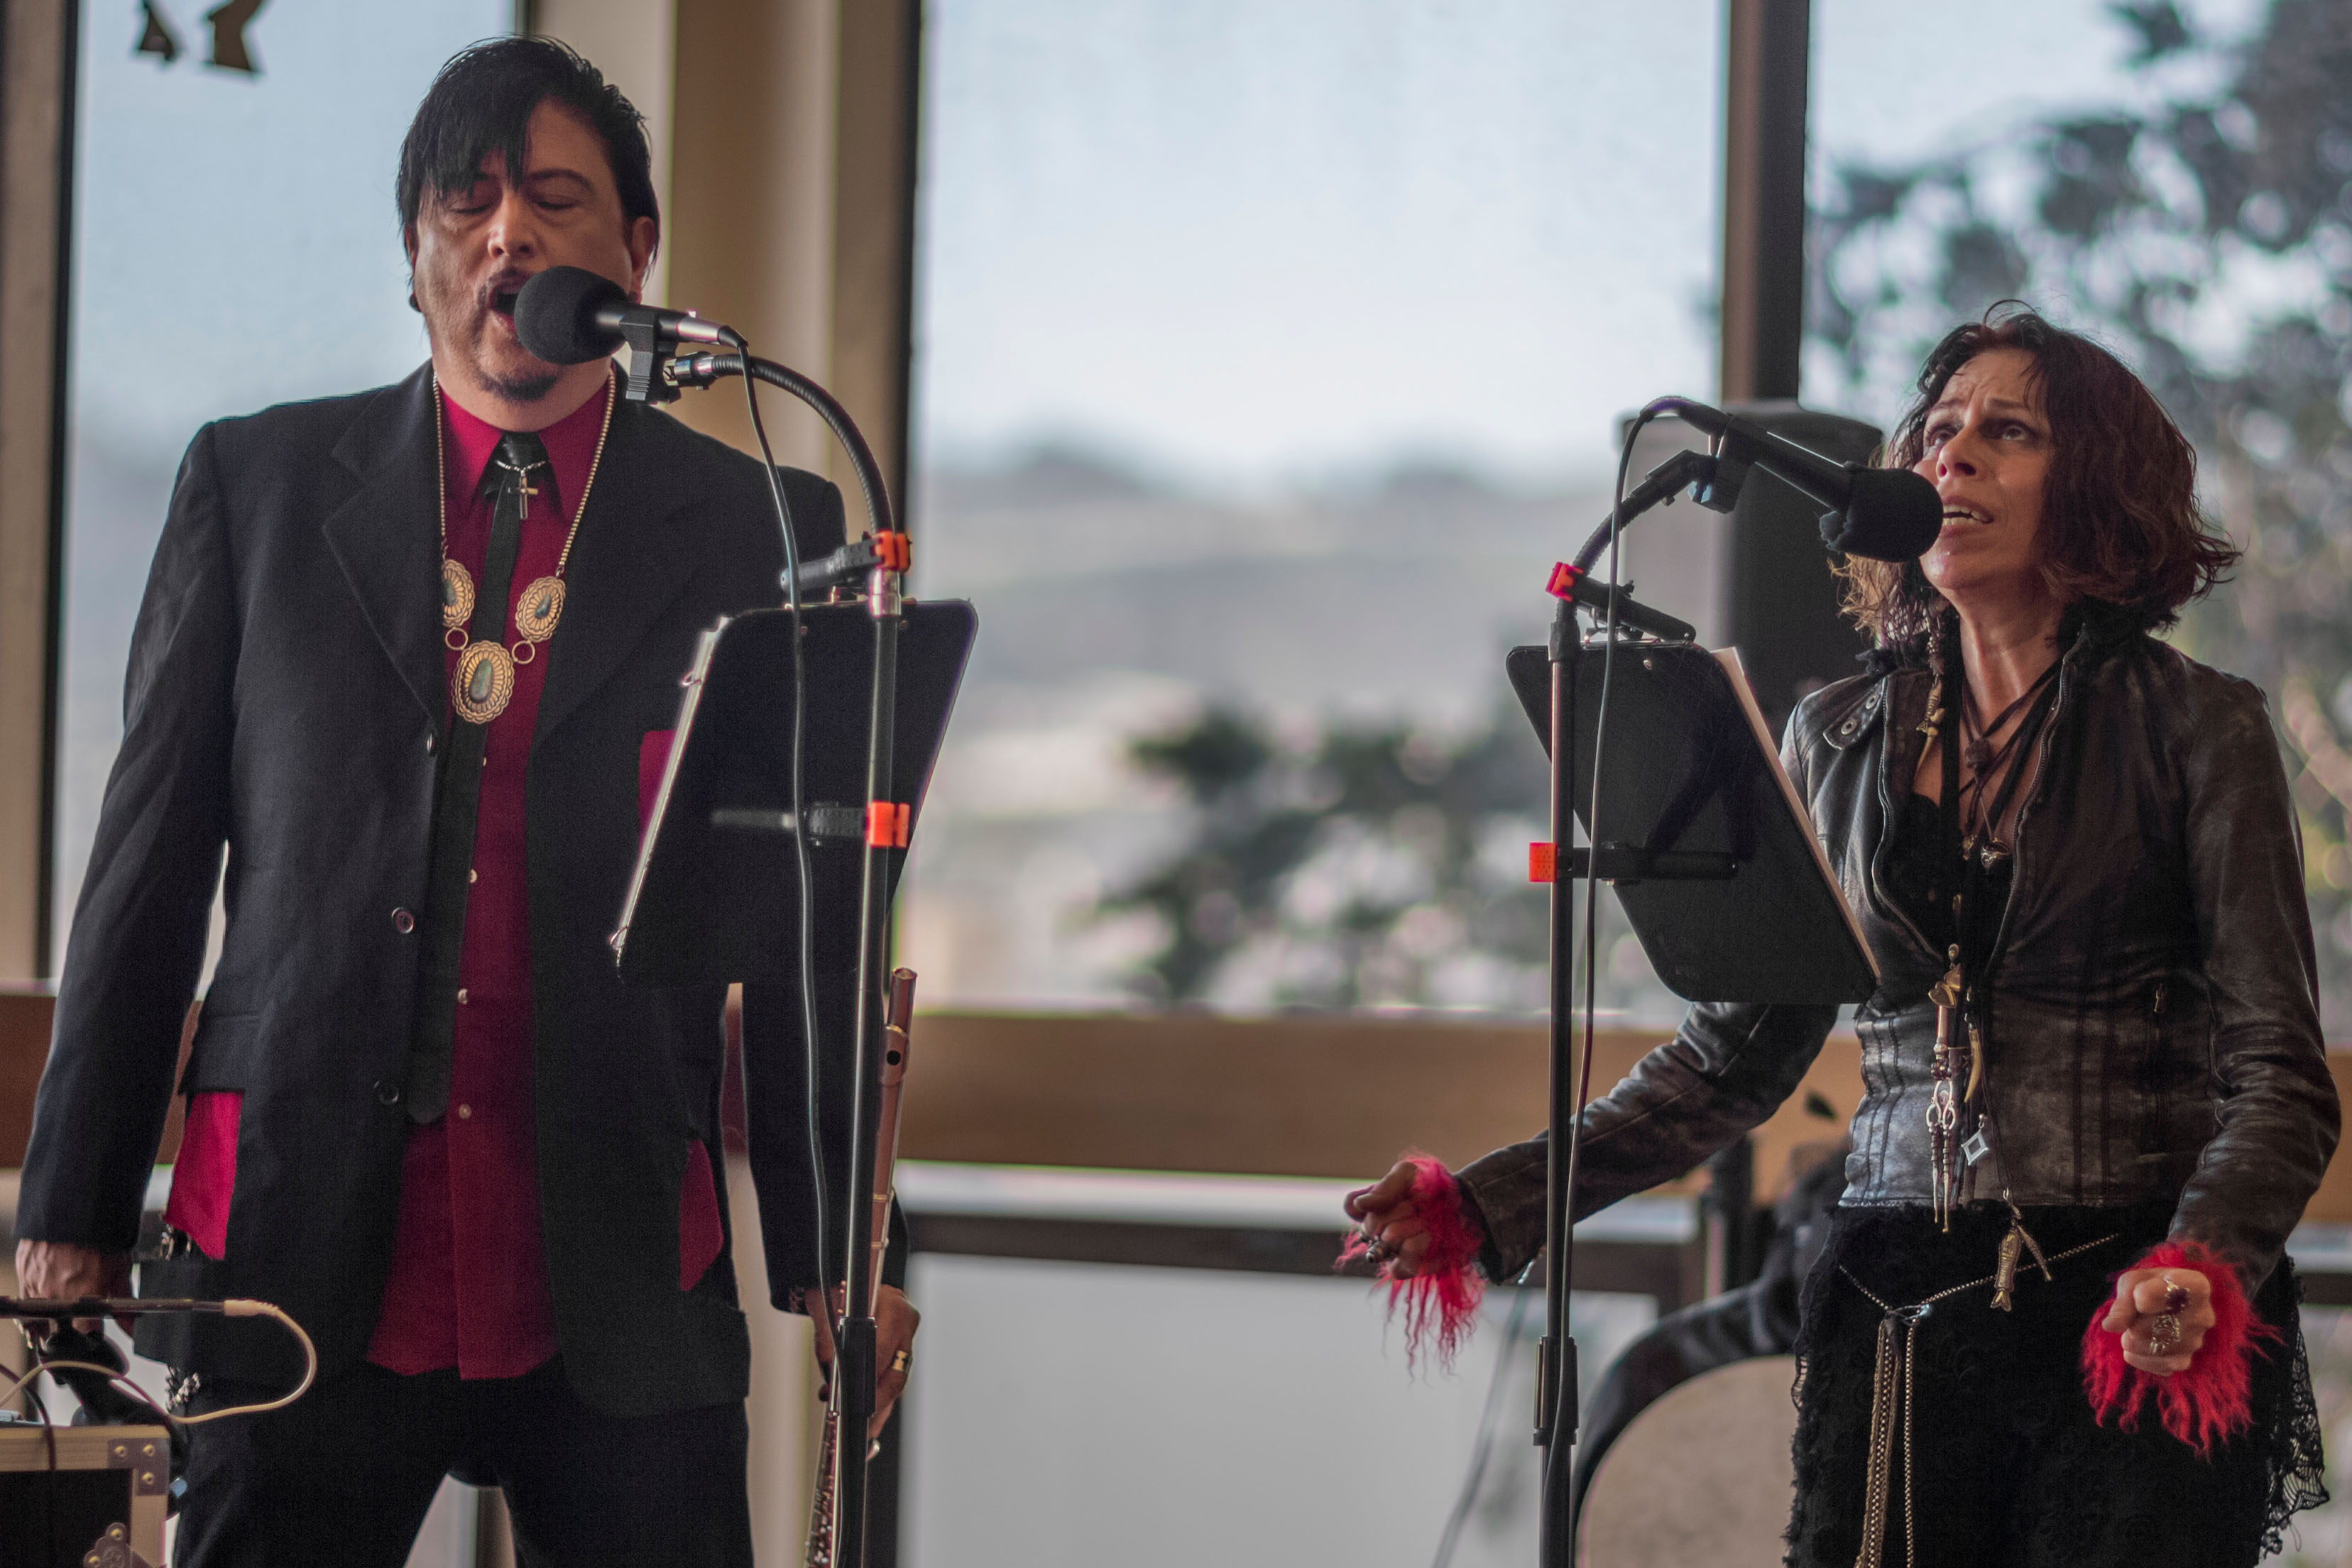 (L-R) Miguel Garcia and deCoy Gallerina were a band performing electronica Native American music at City Cafe on Ocean Campus, Thursday, Feb. 26. (Photo by Nathaniel Y. Downes)